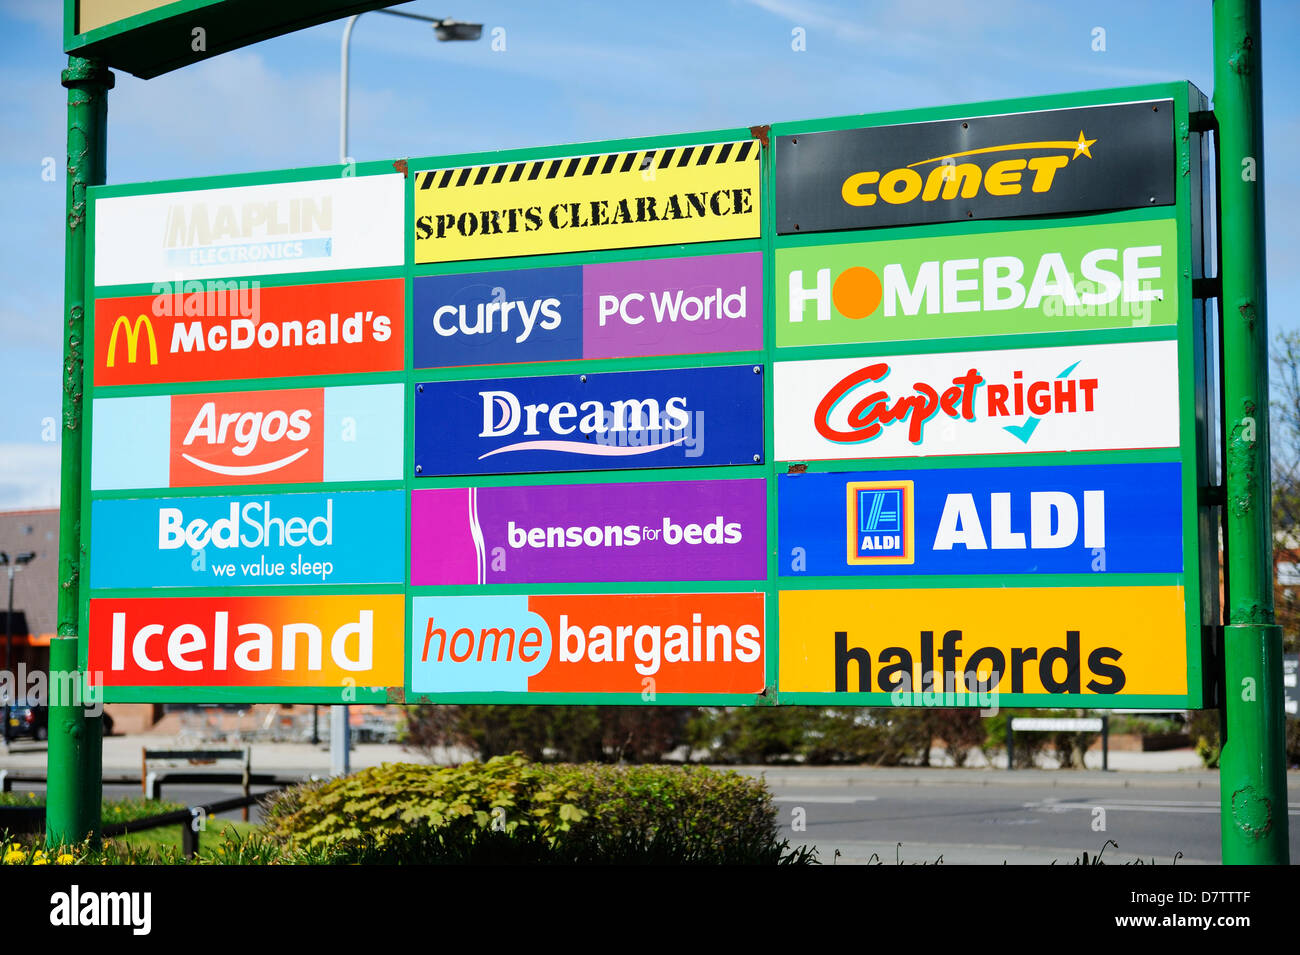 Store logos and signs advertising their presence in a shopping complex in Llandudno. - Stock Image